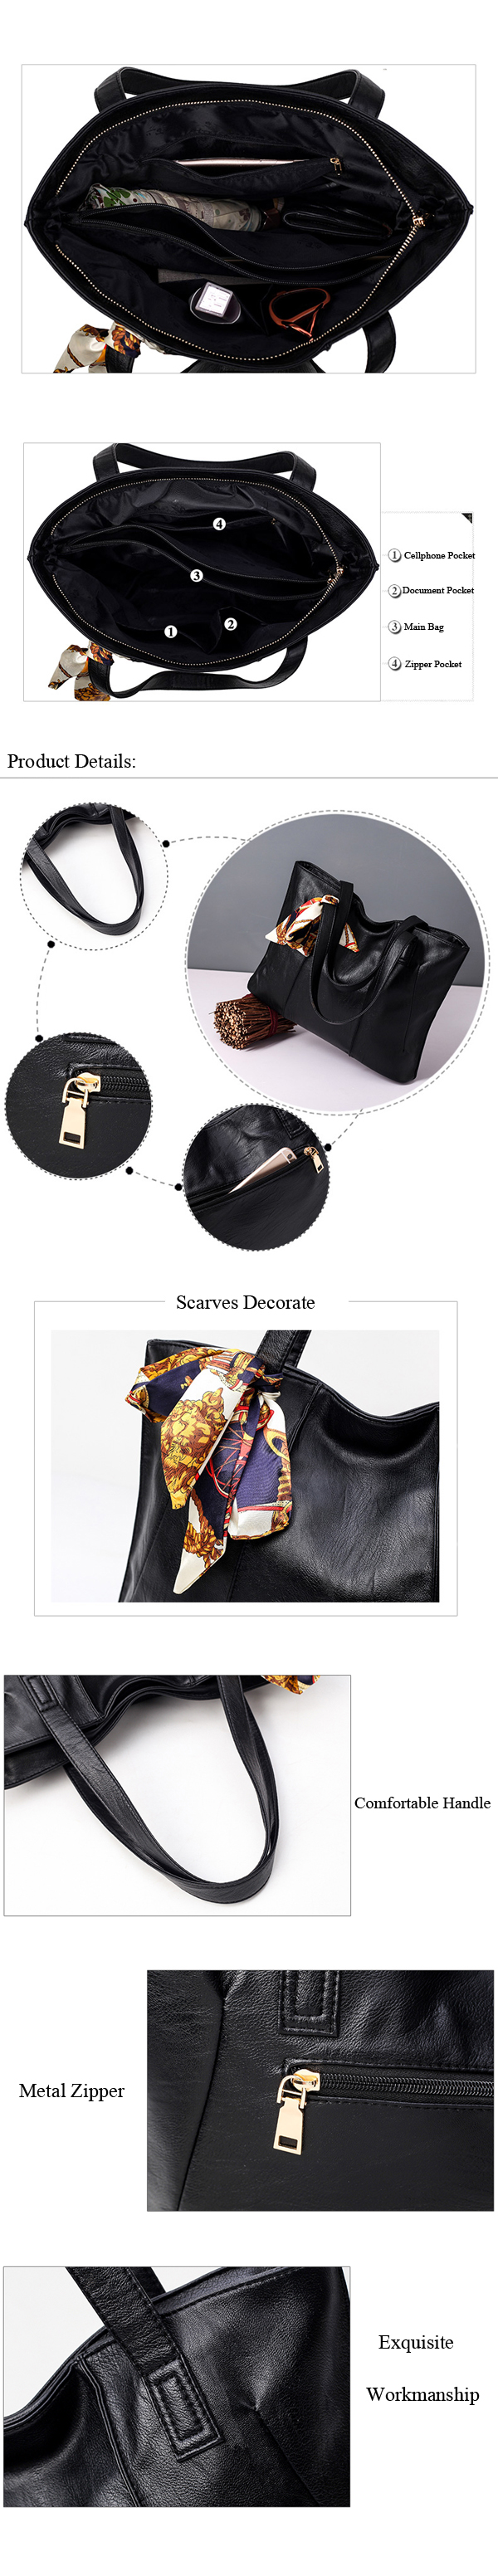 Women Classical Cowhide Scarves Decoration Handbag Casual Genuine Leather Hang Bag